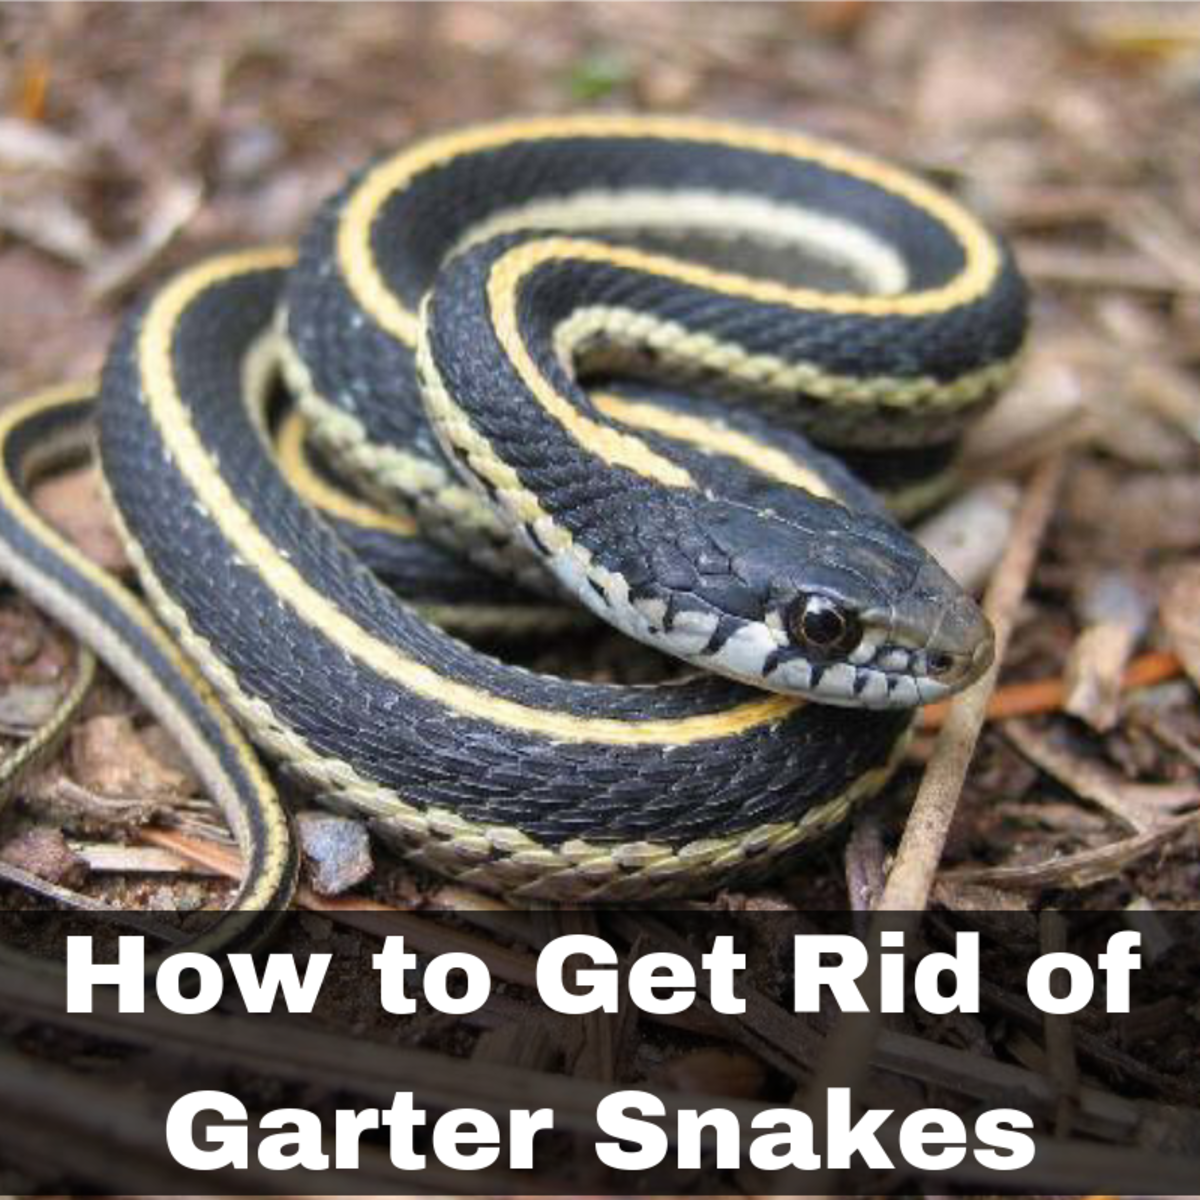 How to Get Rid of Garter Snakes Without Killing Them: 7 Tried-and-True Ways